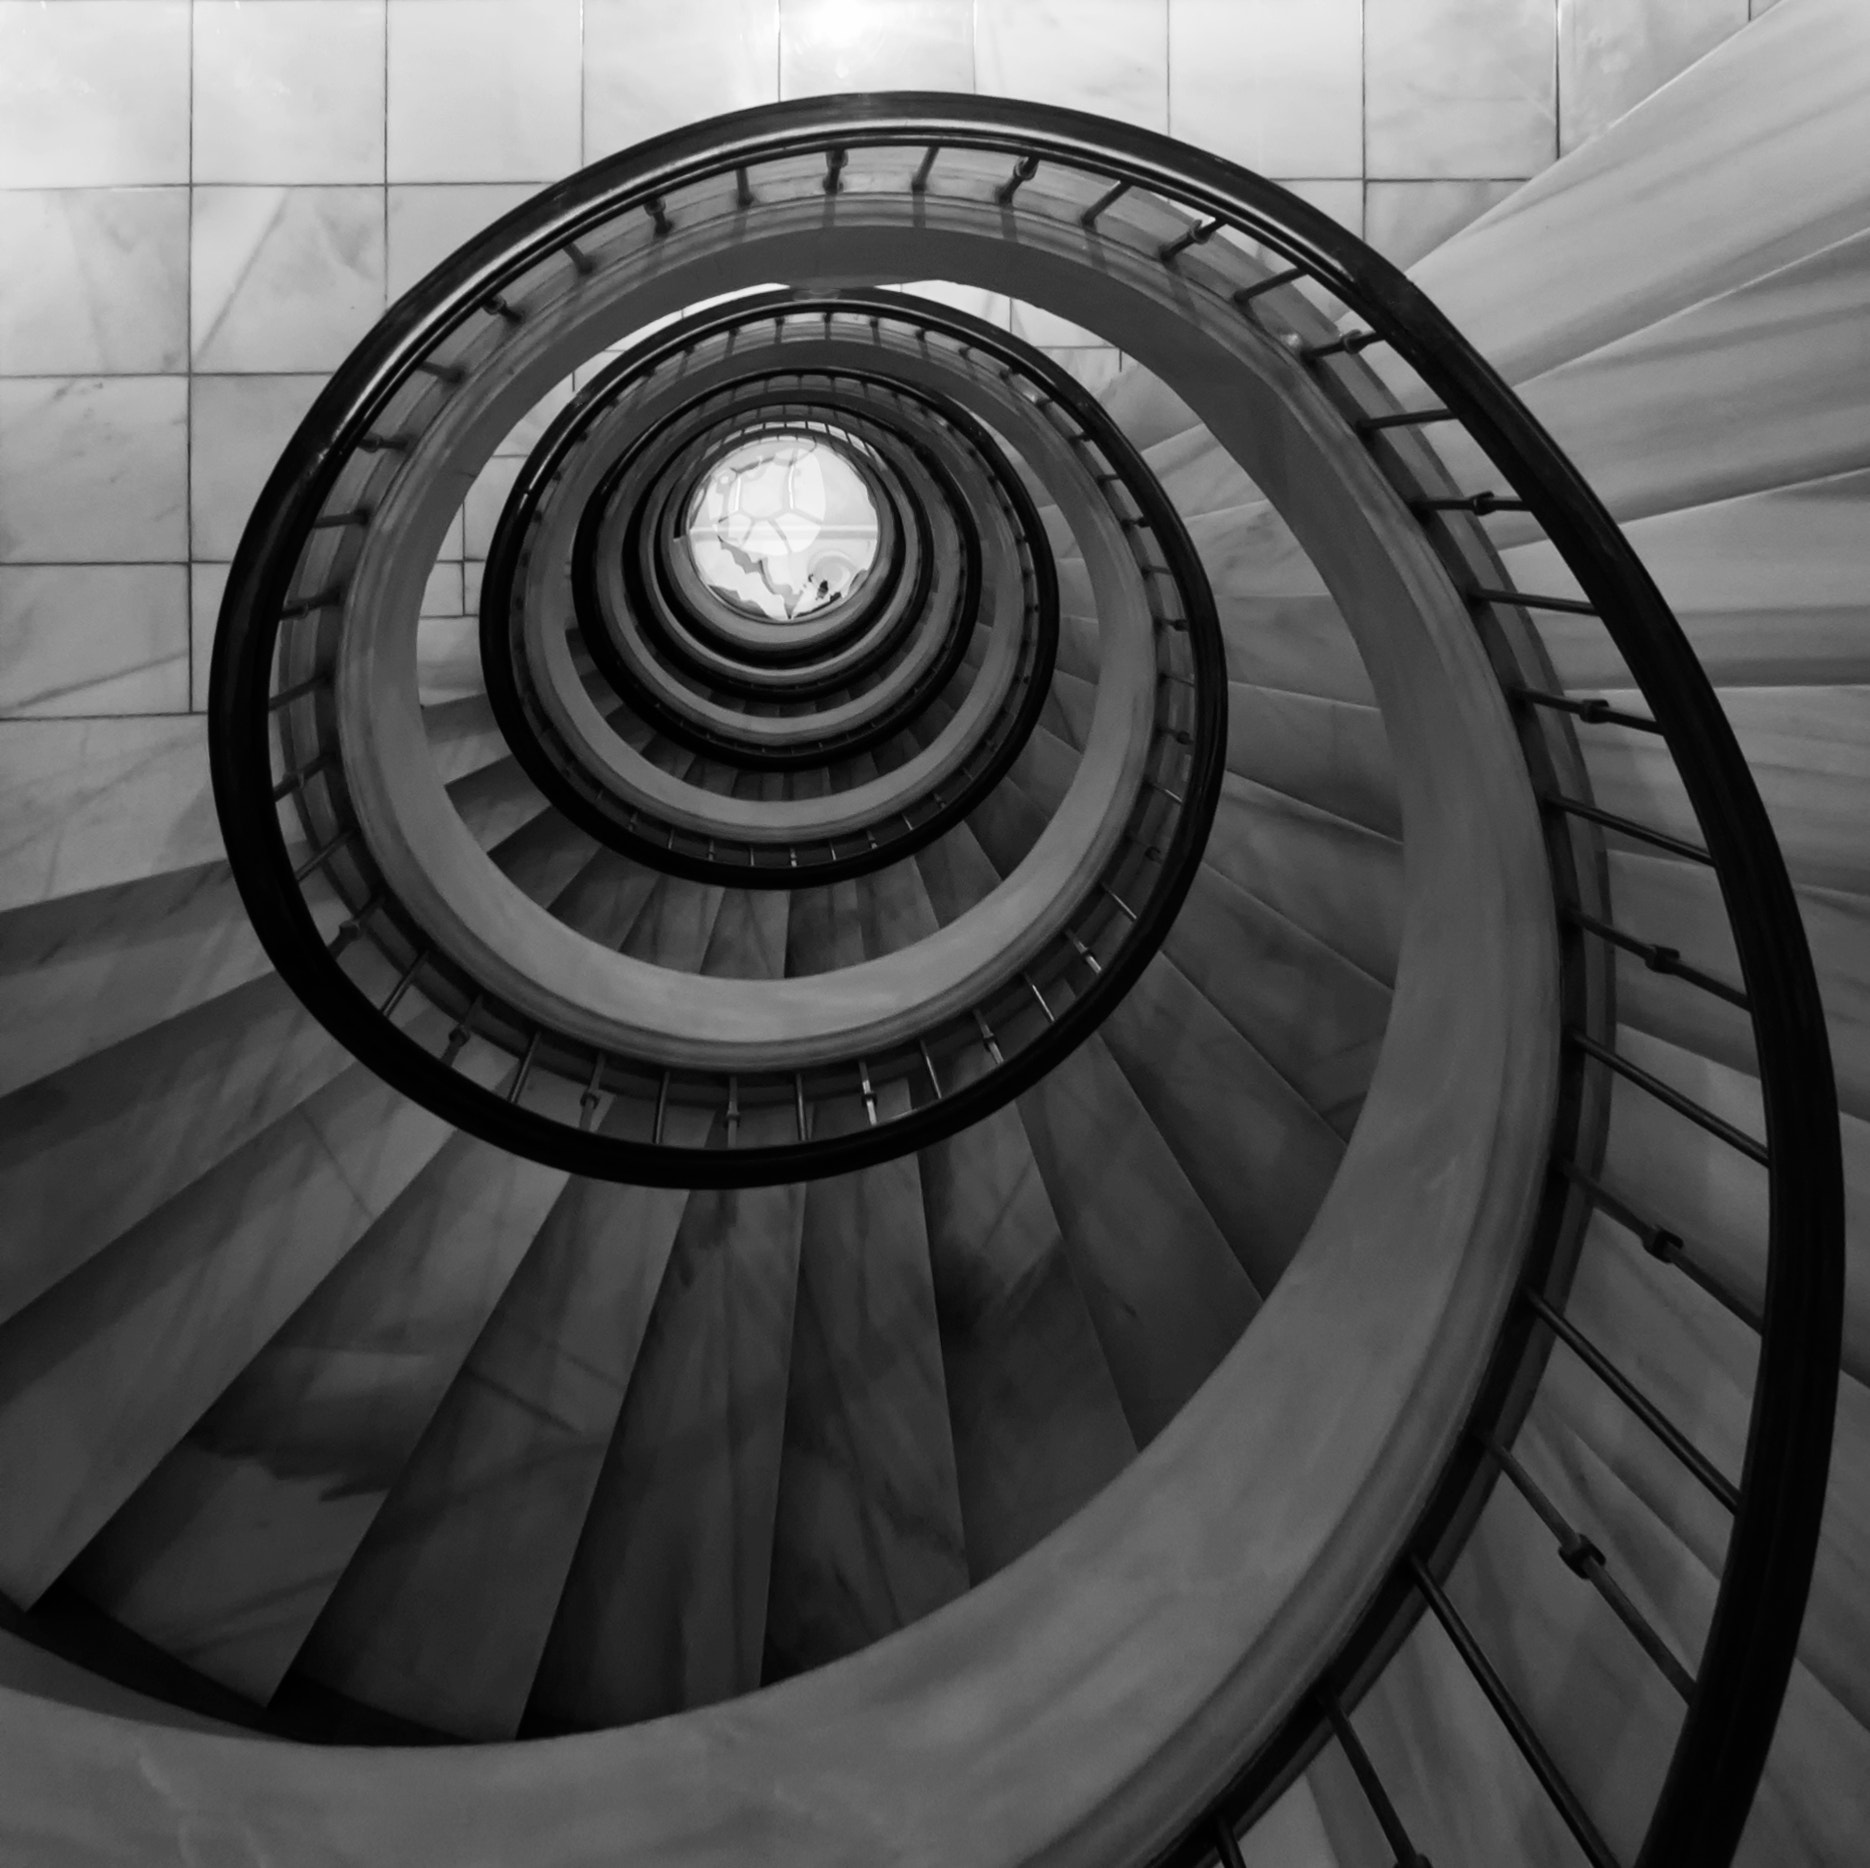 Photograph Espiral by Fermín Noain on 500px